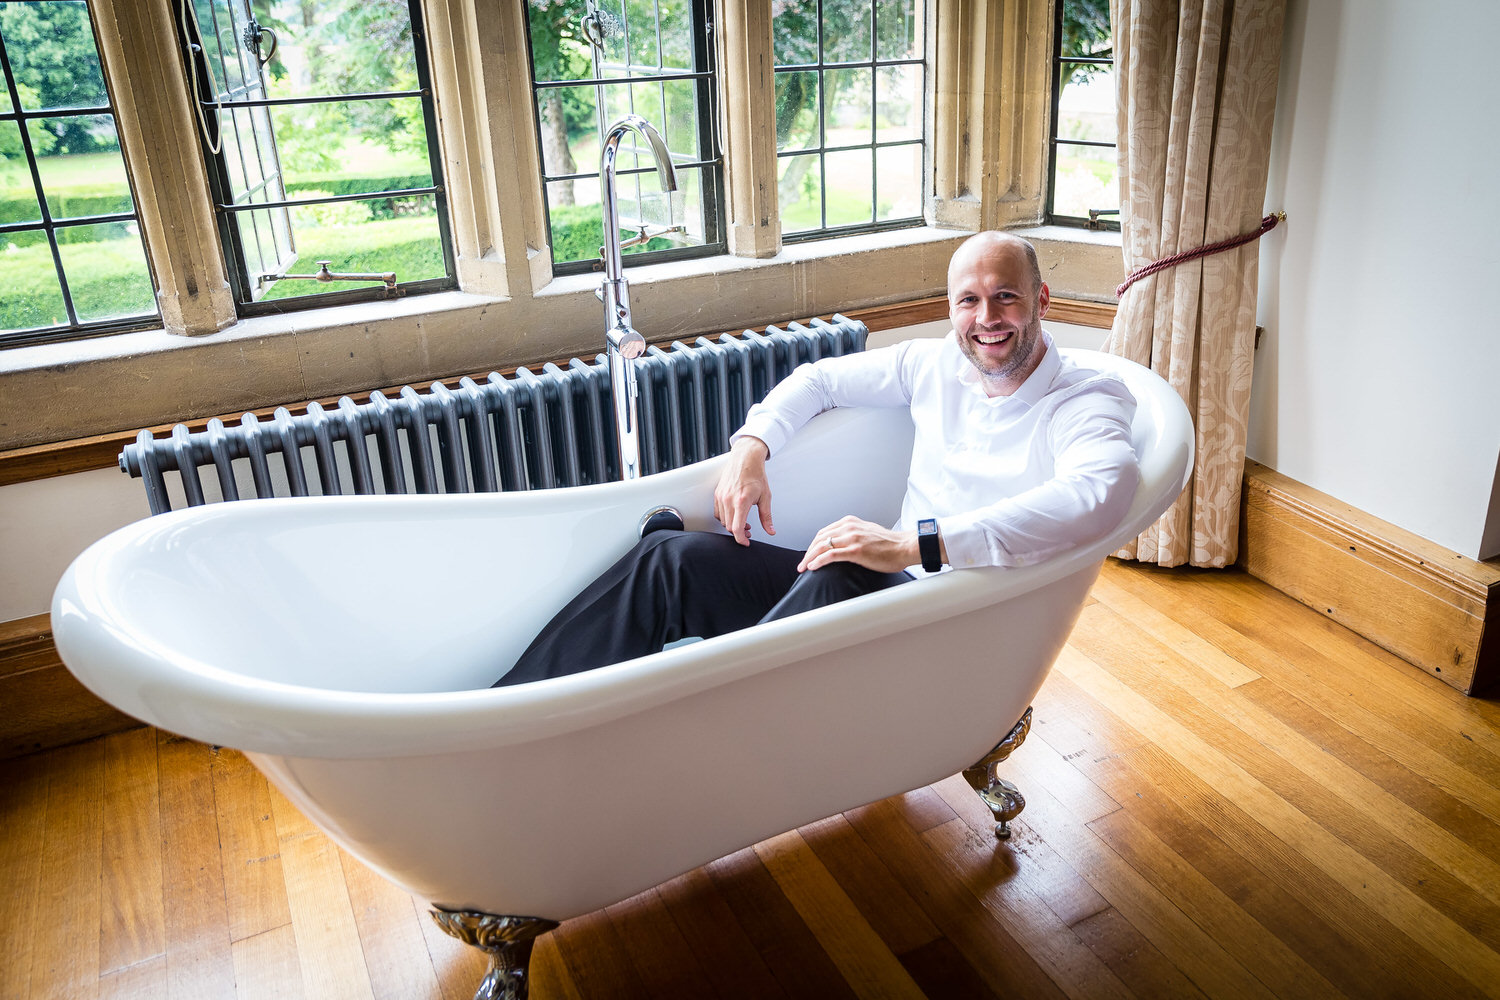 philip warren sat in a bath at coomeb lodge in blagdon